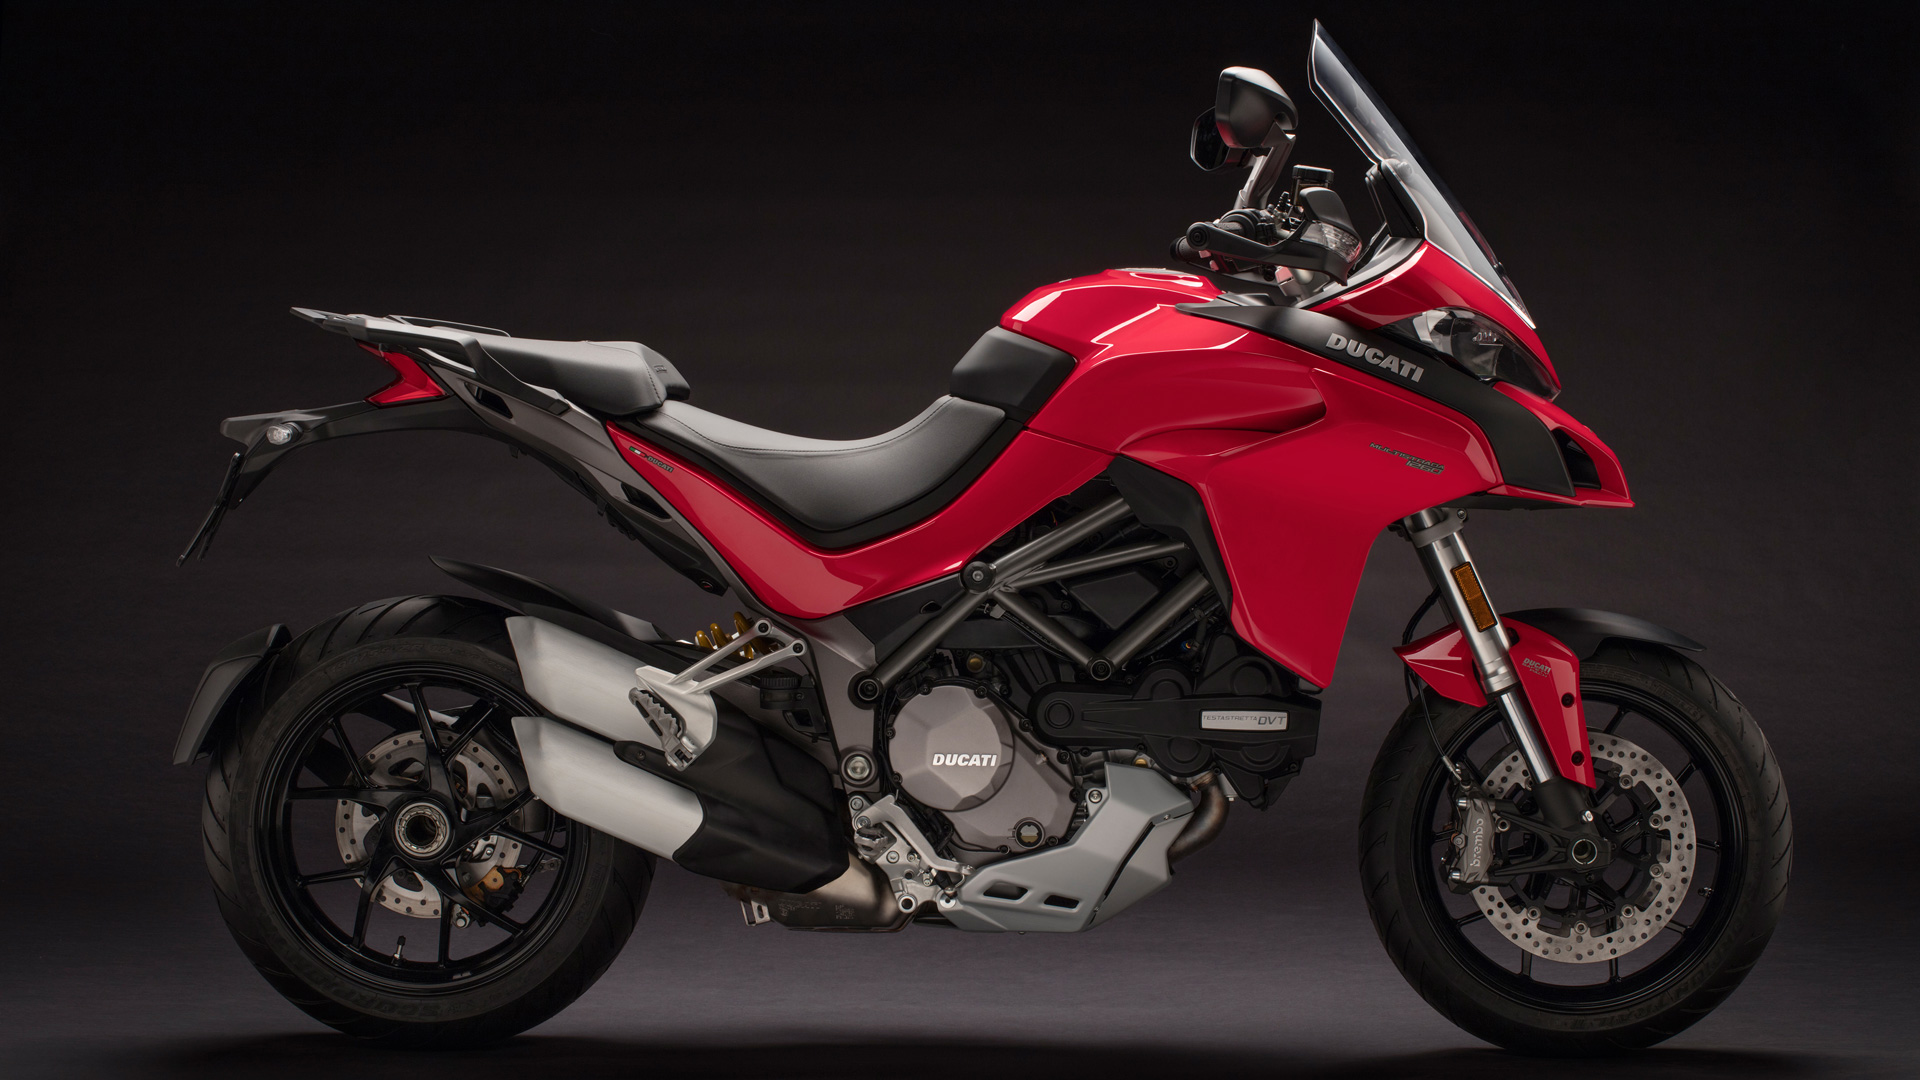 Multistrada 1000 Wiring Diagram Site Www Ducati Ms Free Download 996 1260 Expand Your Comfort Zone At